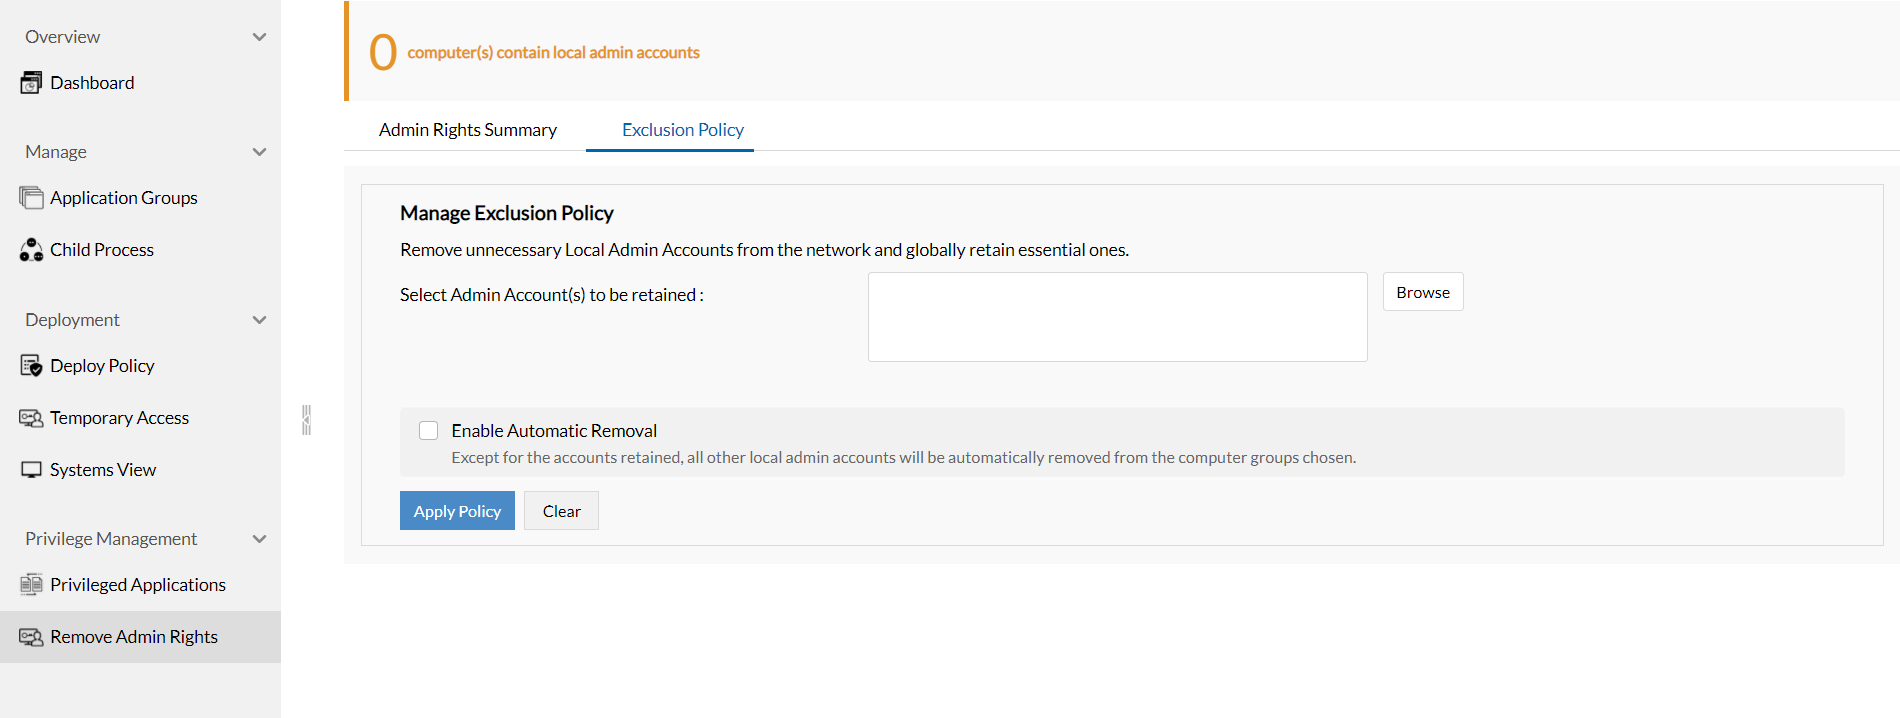 Remove Admin Rights - Exclusion Policy | ManageEngine Application Control Plus